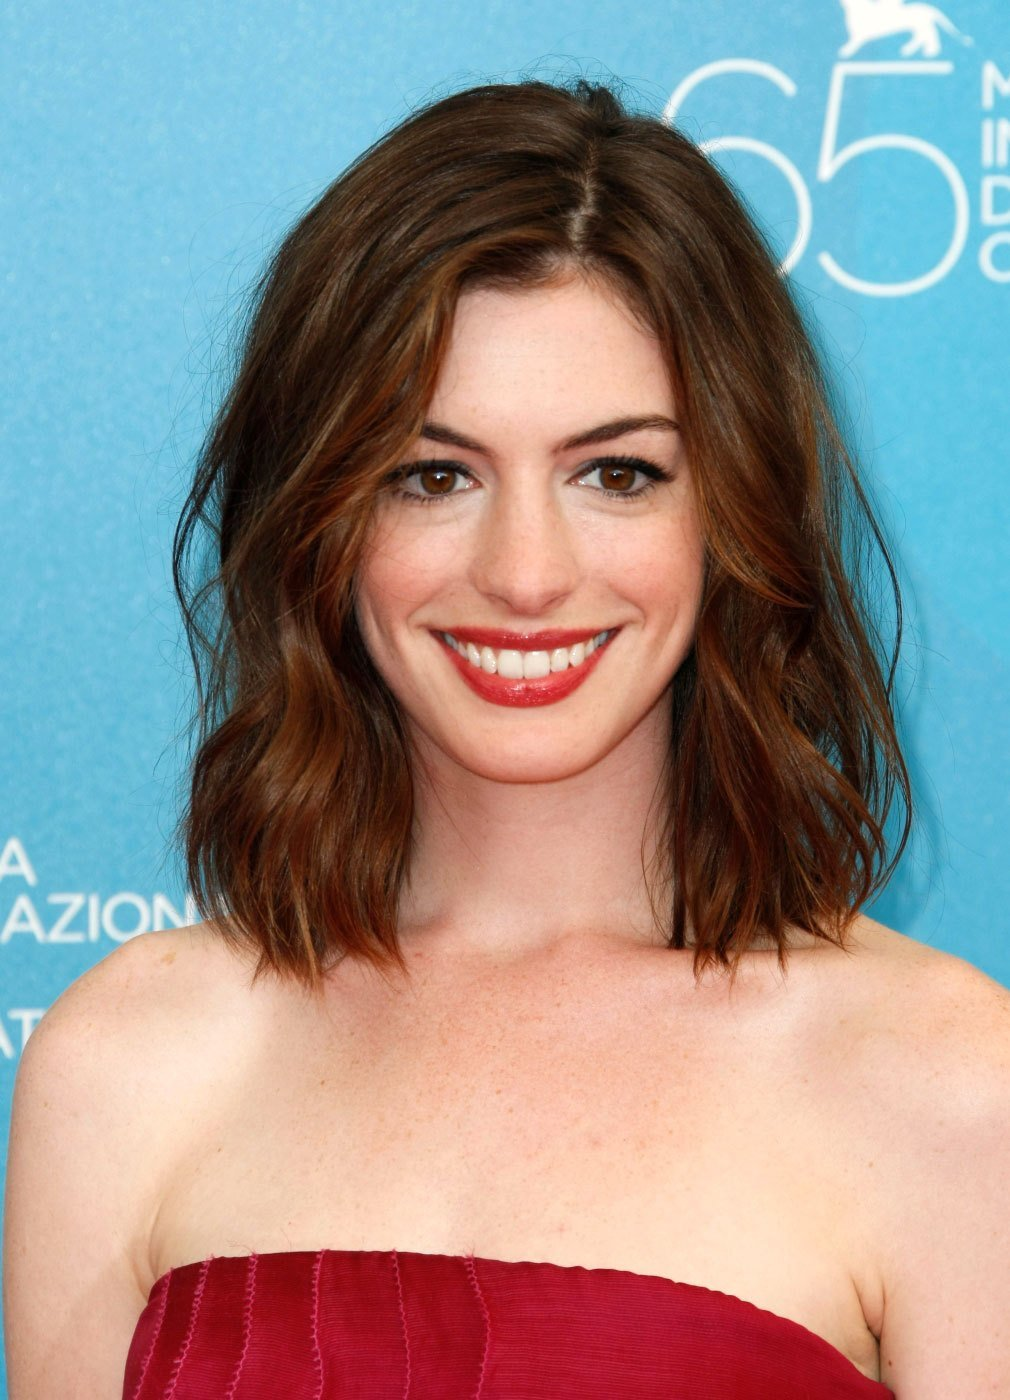 The Best Anne Hathaway Hairstyle Easyhairstyler Pictures